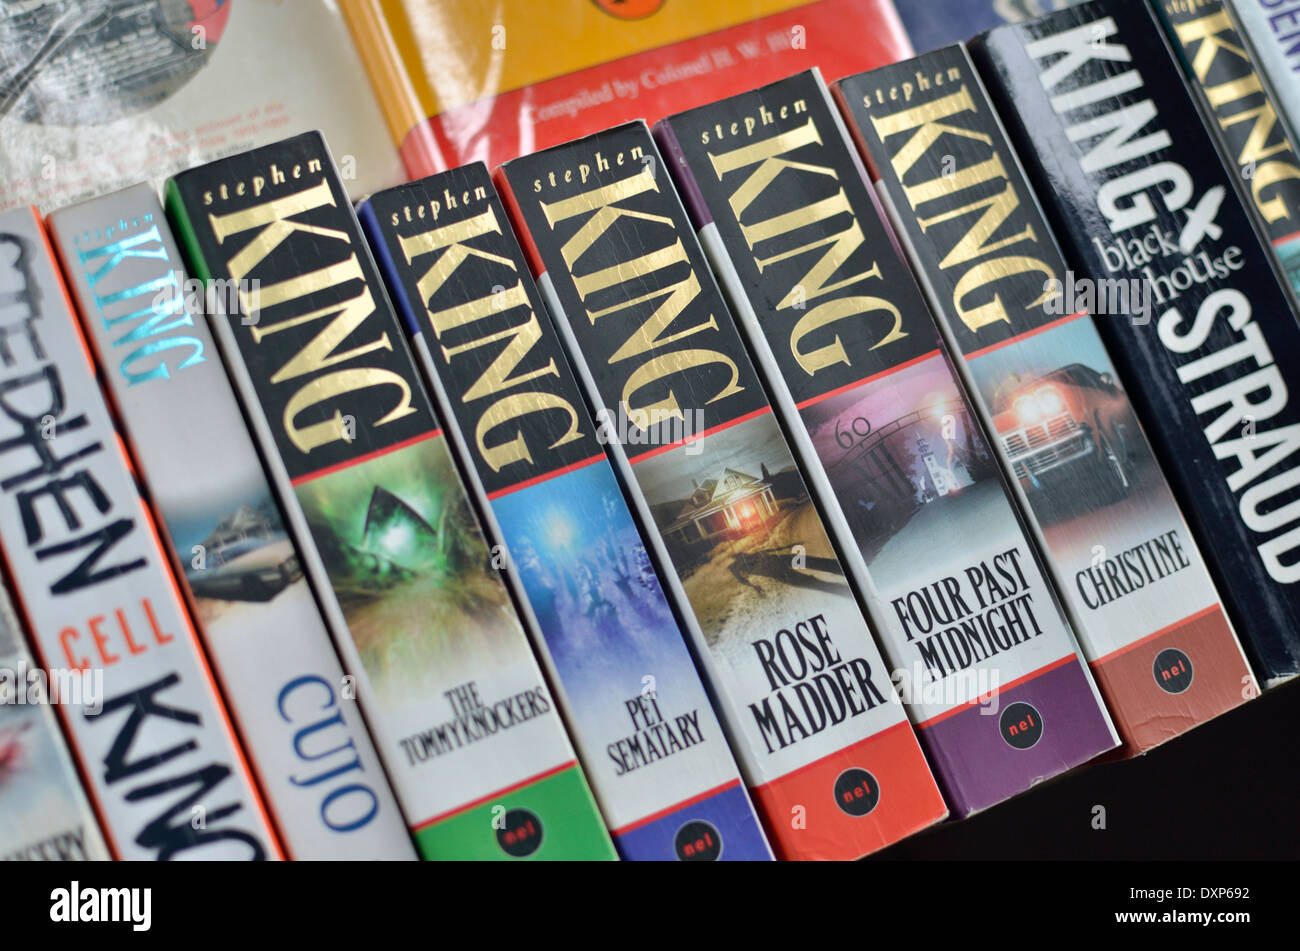 Paperback novels by Stephen King on a stall - Stock Image